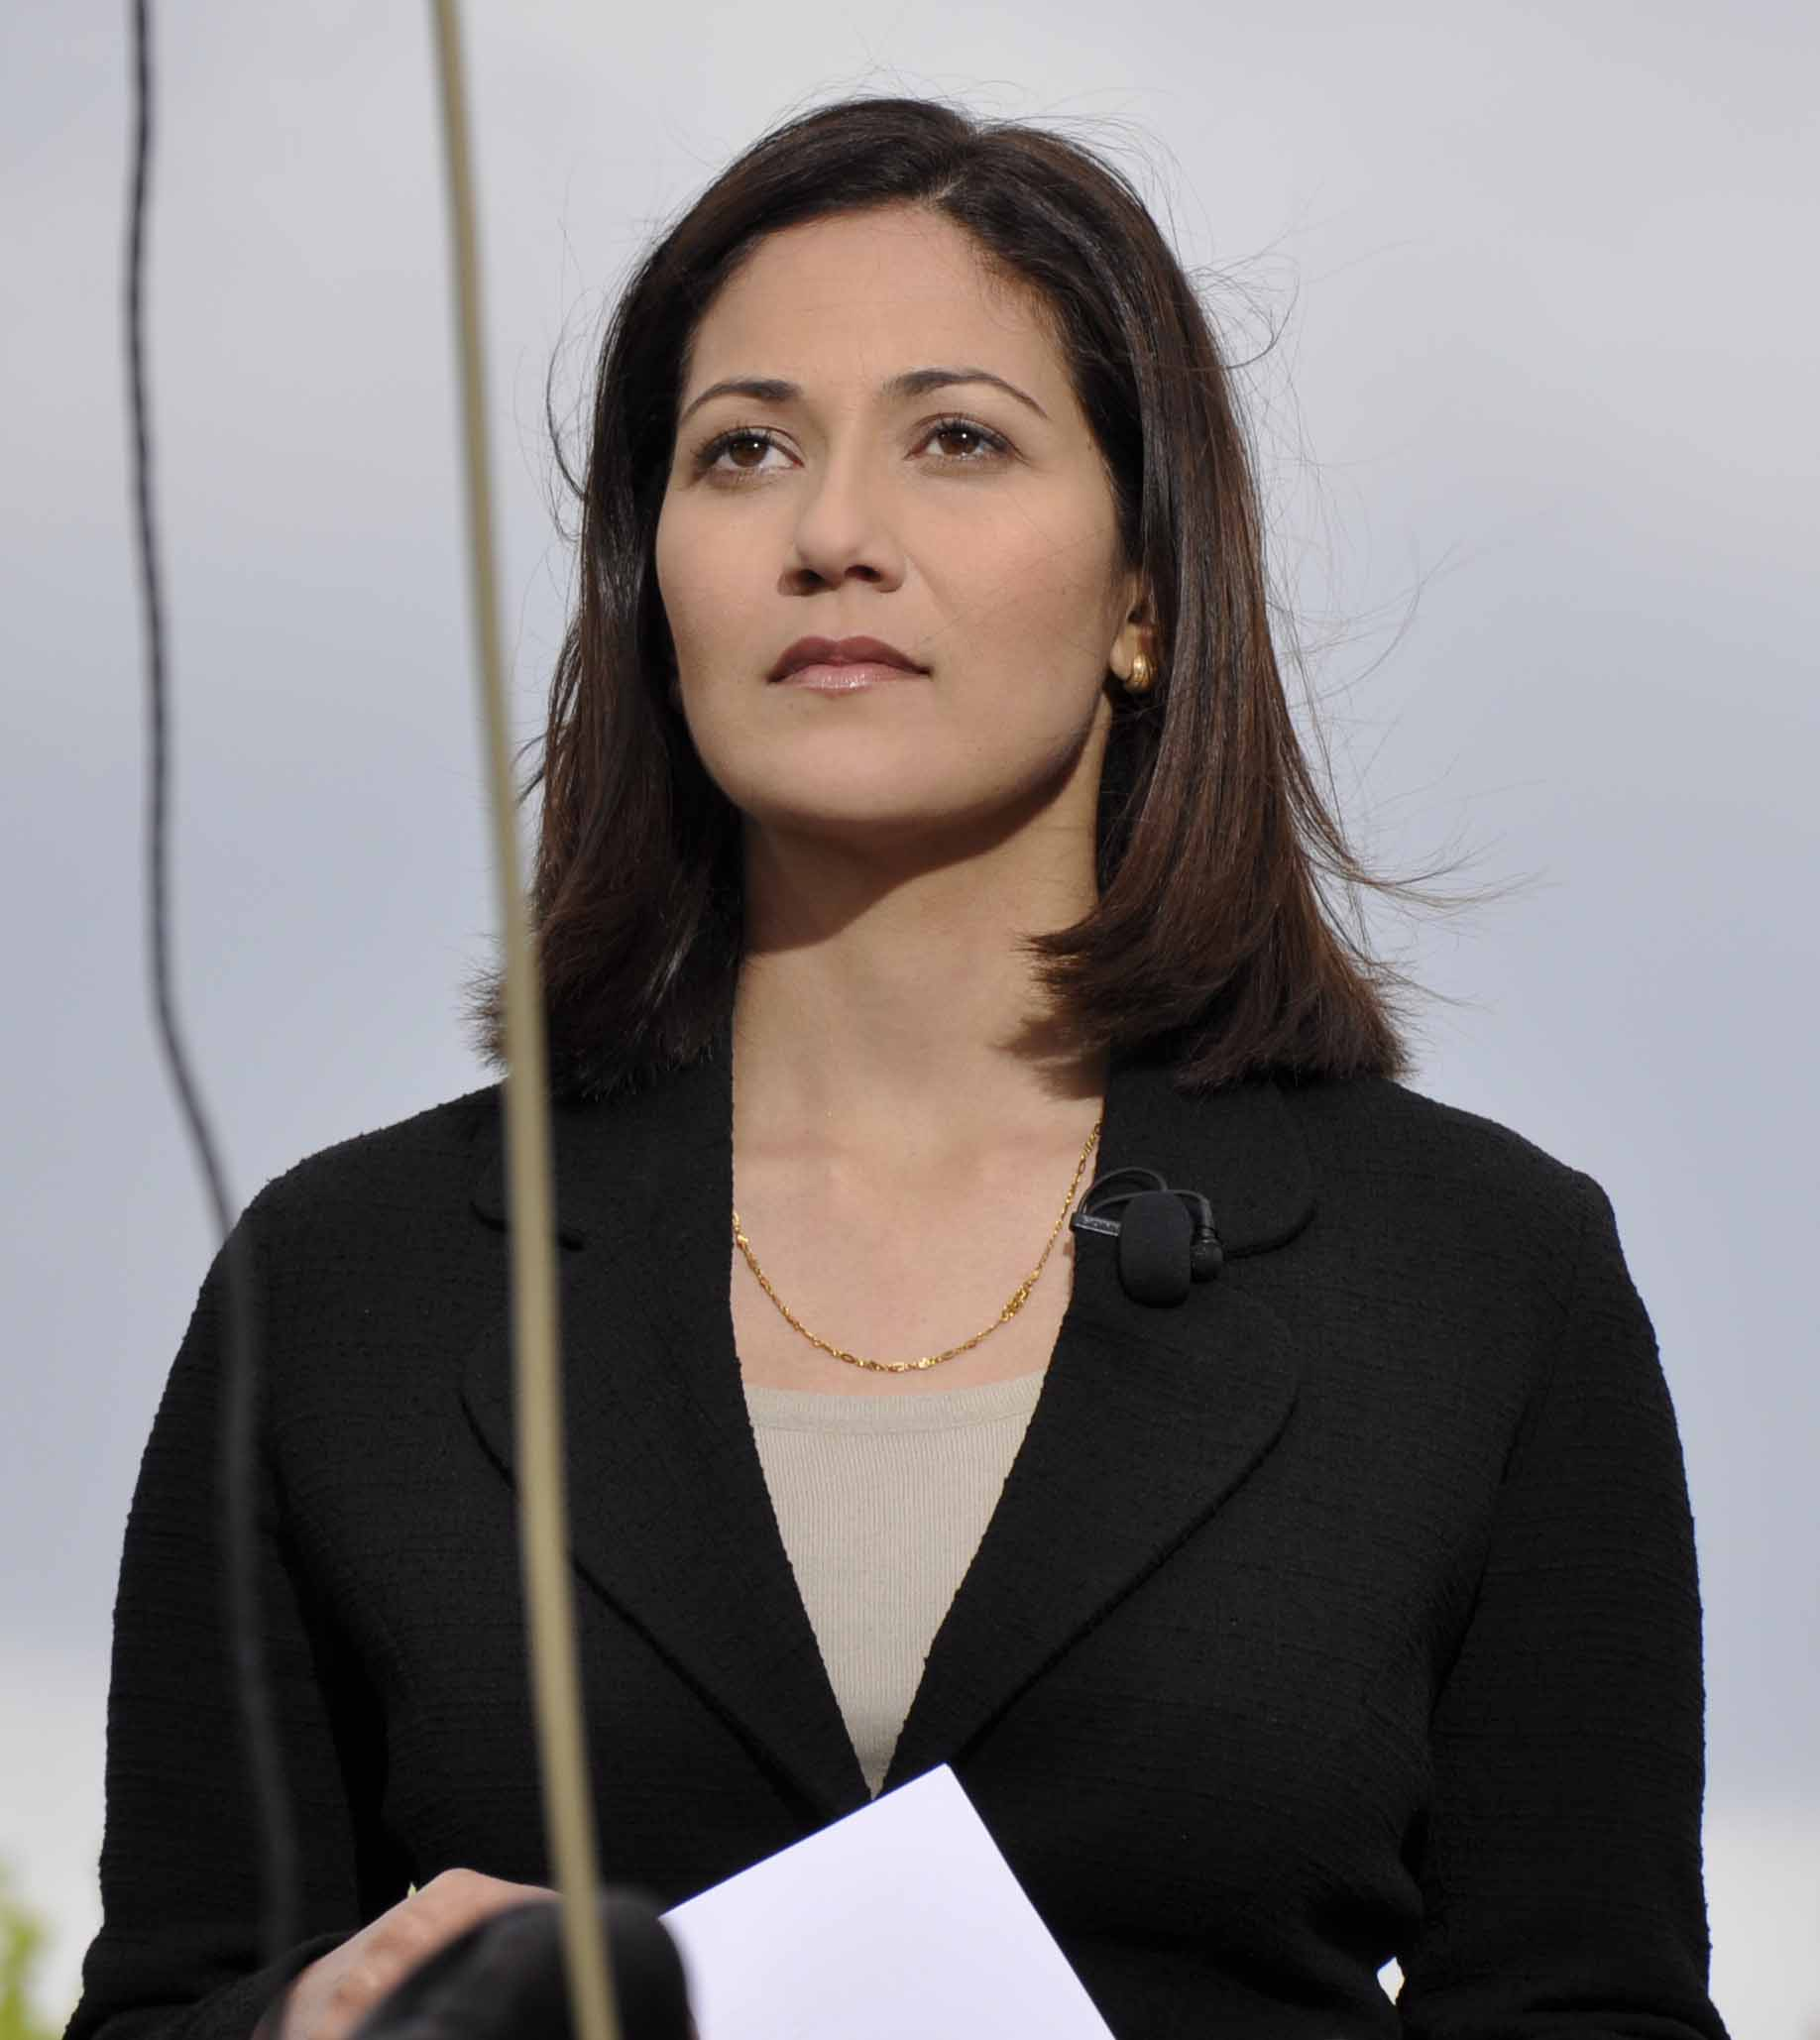 Mishal Husain - Wikipedia, the free encyclopediamishal